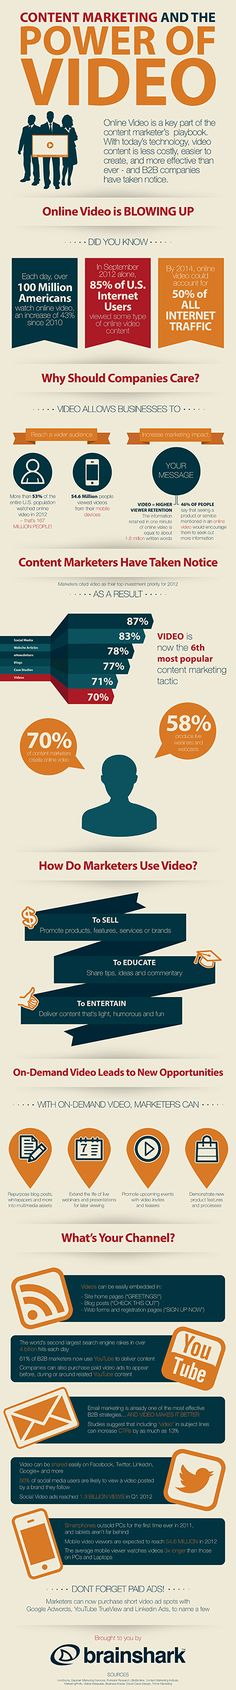 Infographic-the-Power-of-Video-Brainshark